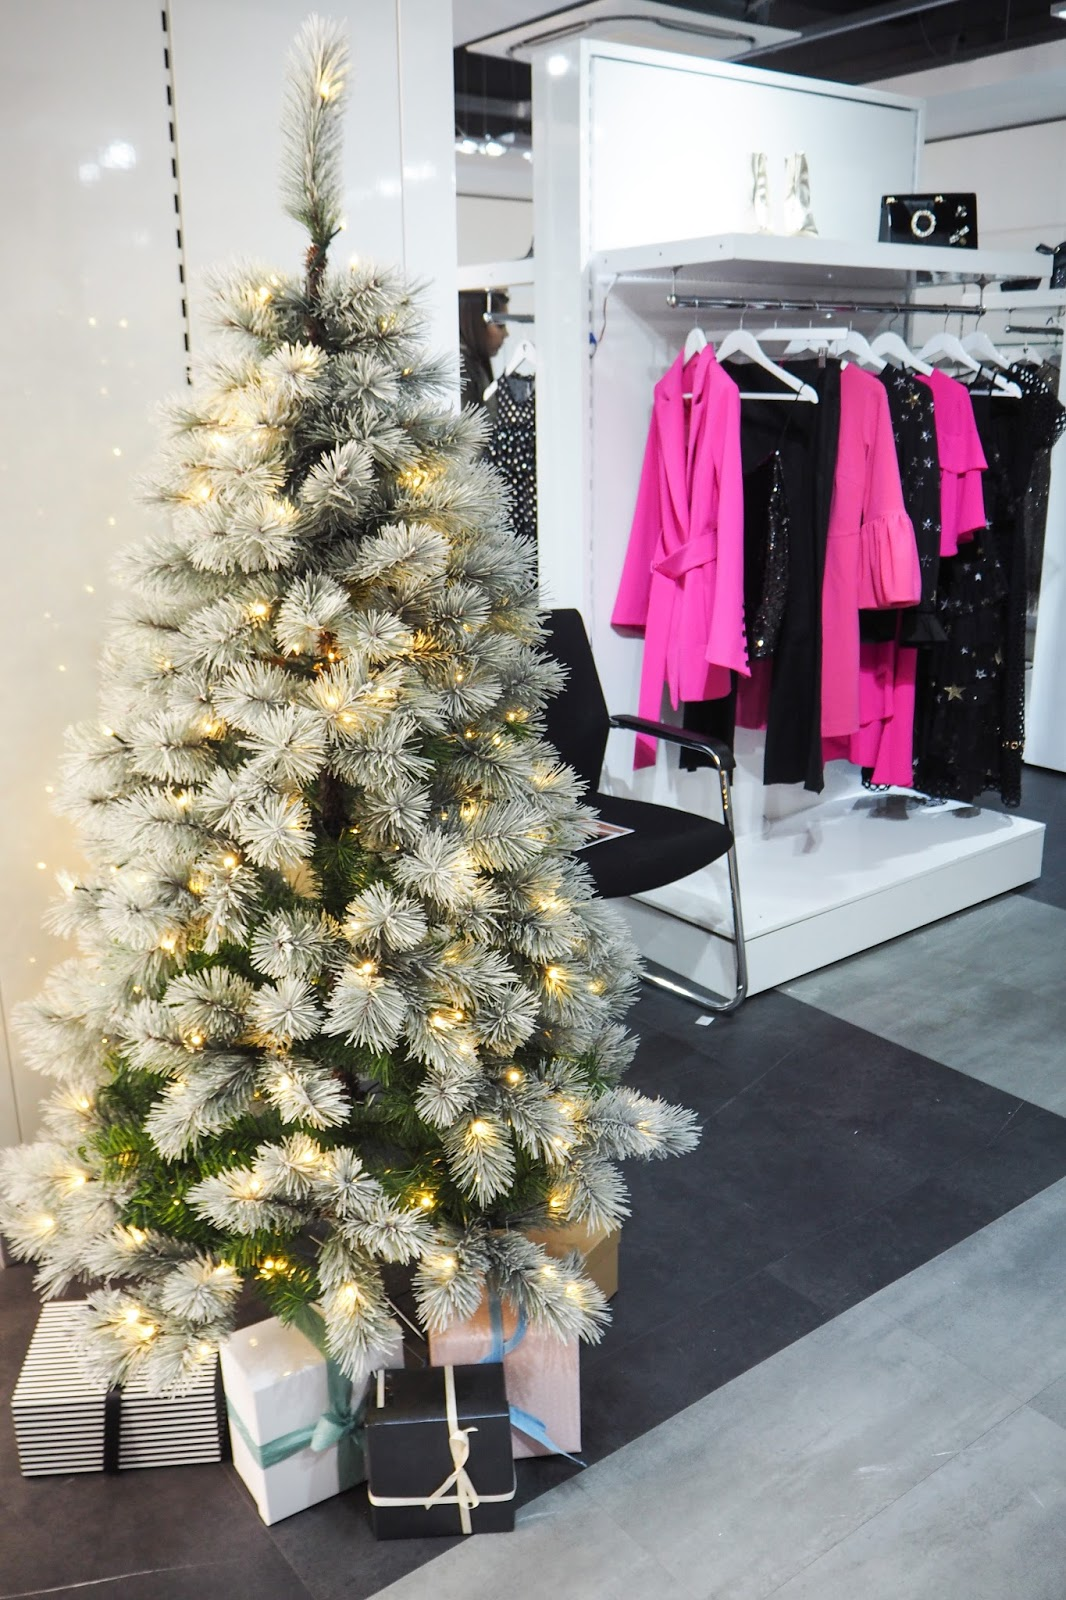 Very Partywear #VeryParty - Christmas Tree